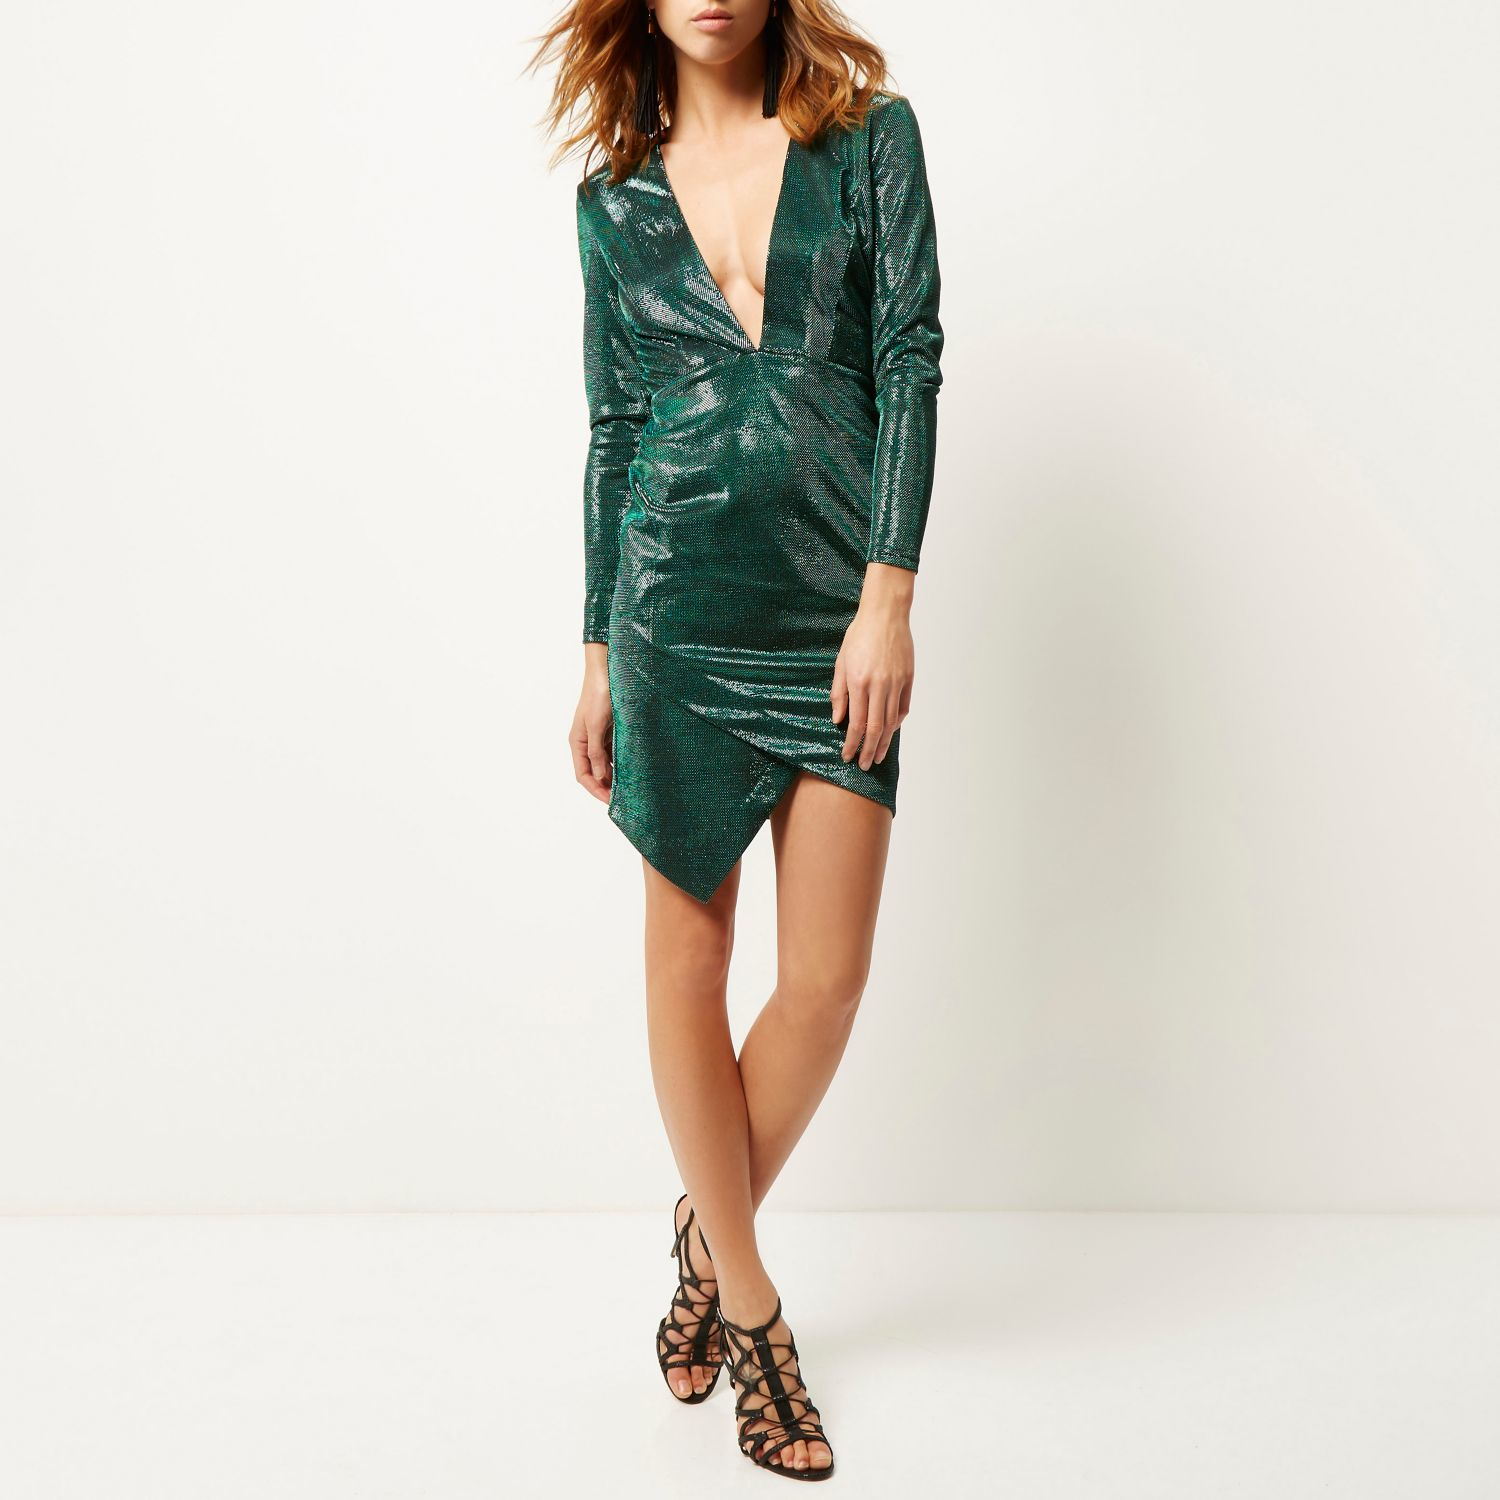 Green River Island Dress And Simple Guide To Choosing